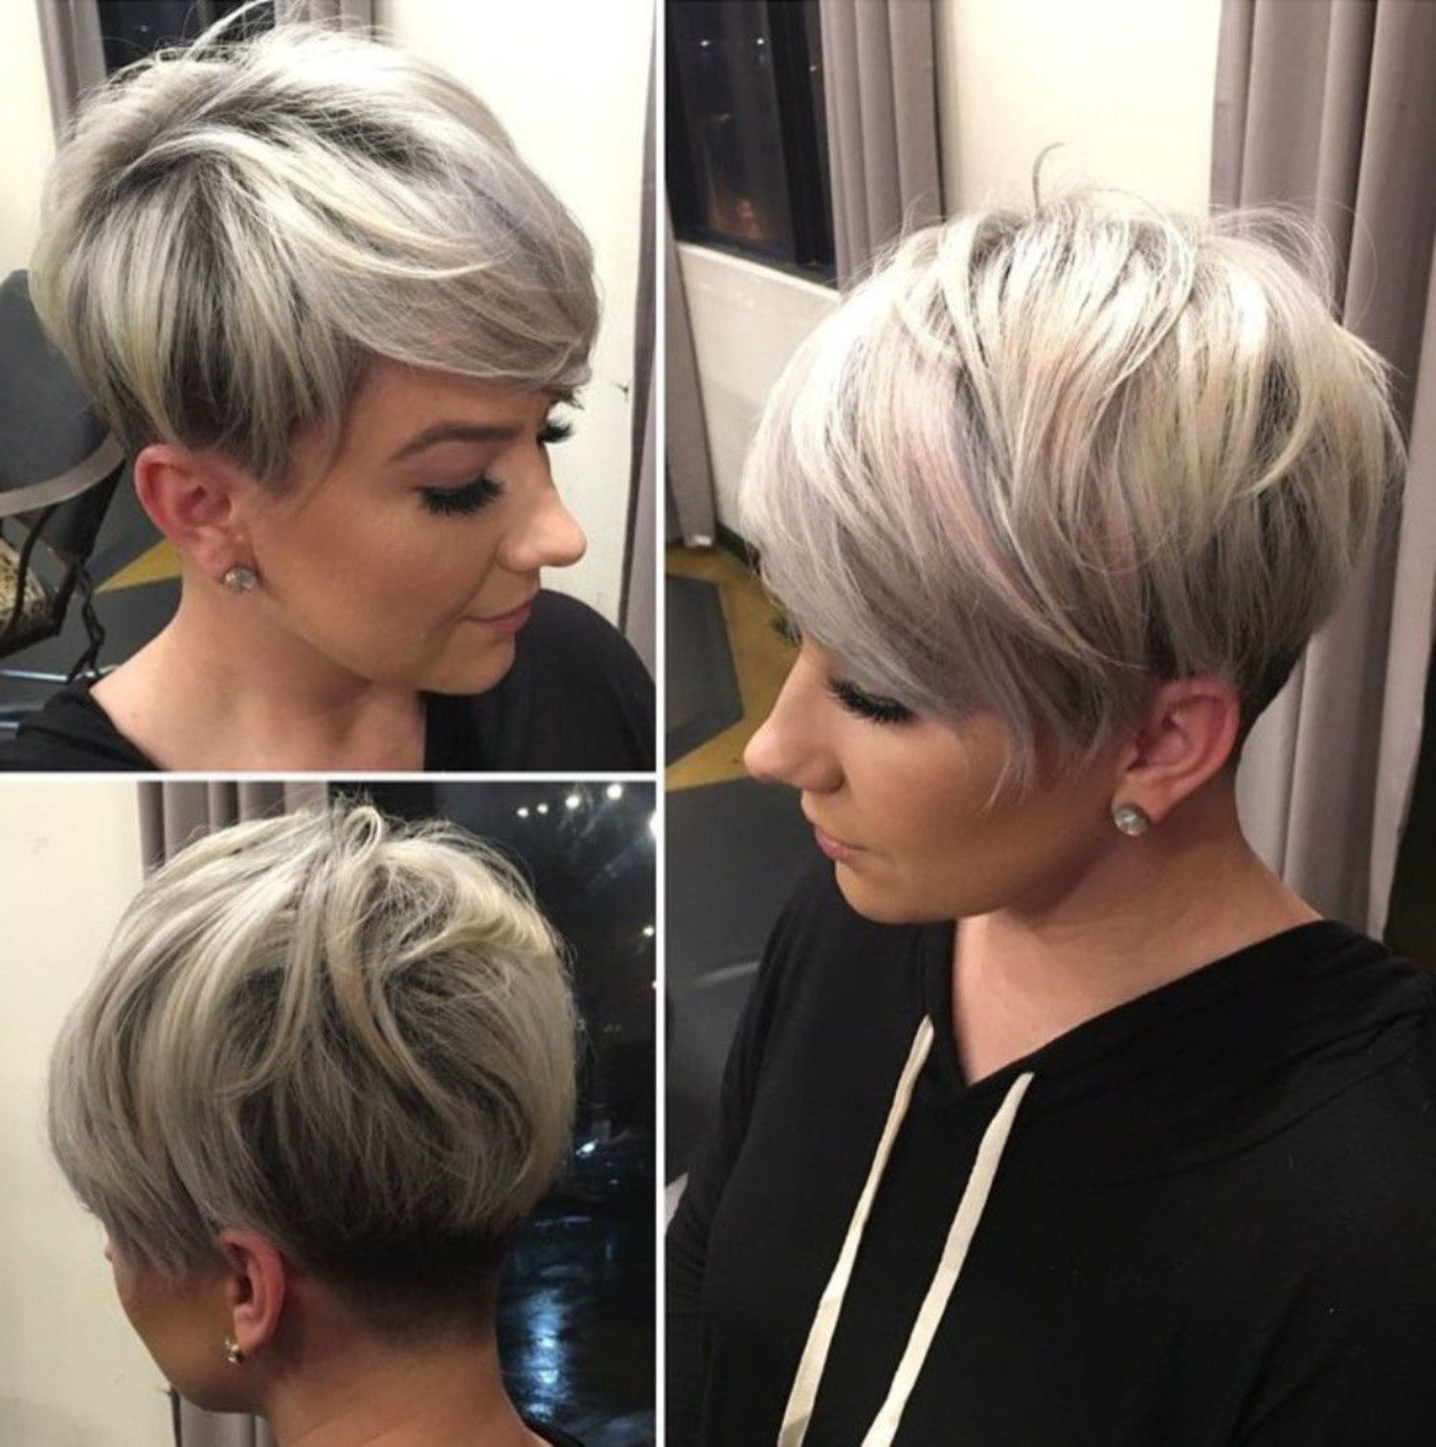 Well Known Short Platinum Blonde Bob Hairstyles In Fashion : 20 Great Cropped Platinum Blonde Bob Hairstyles (View 20 of 20)